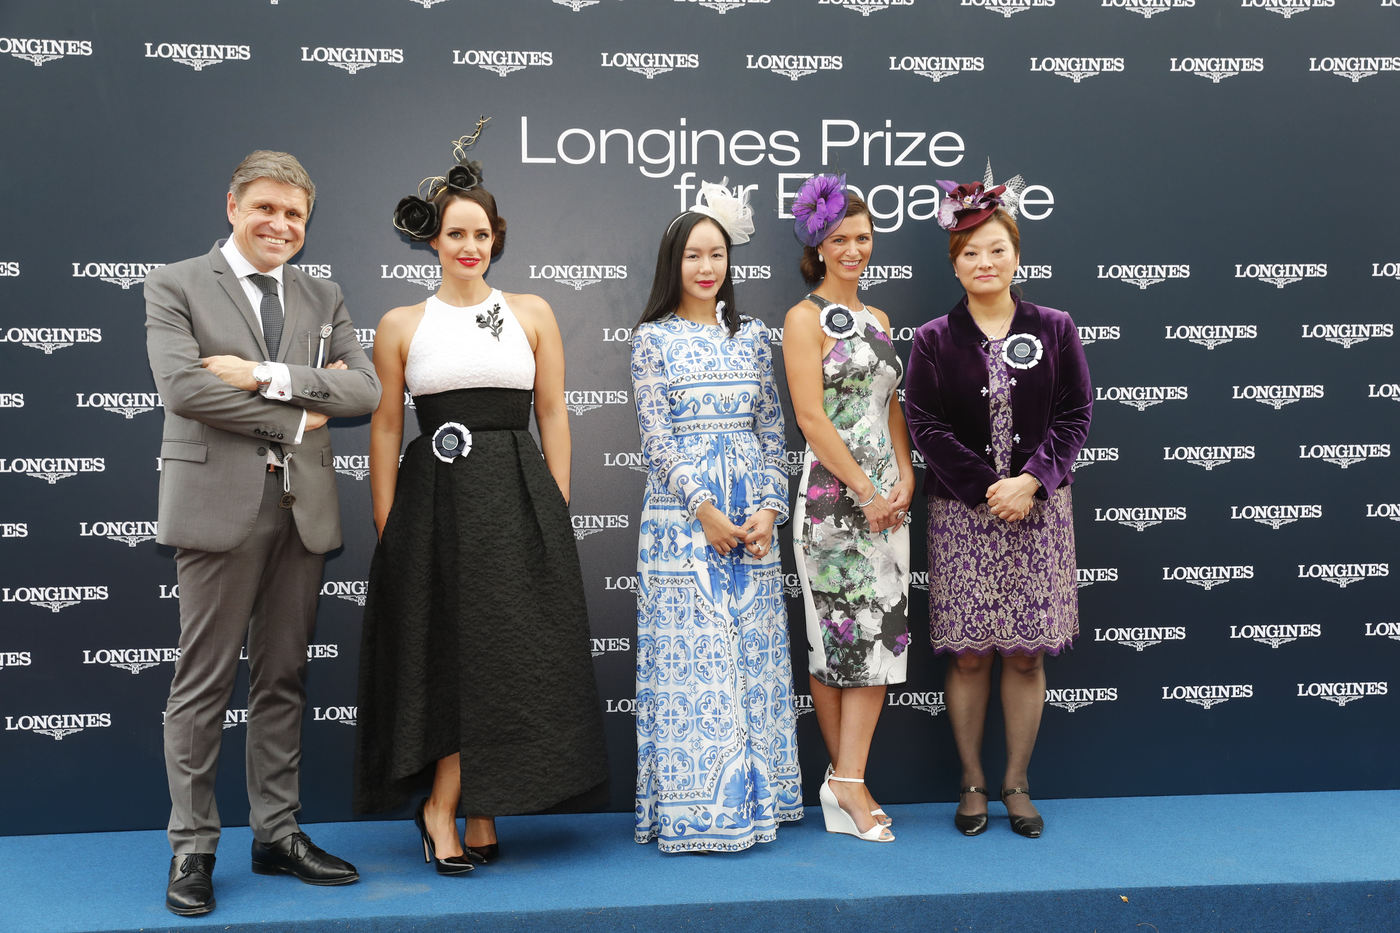 Longines Flat Racing Event: Longines Hong Kong International Races – a spectacular conclusion to a thrilling year of flat racing  13